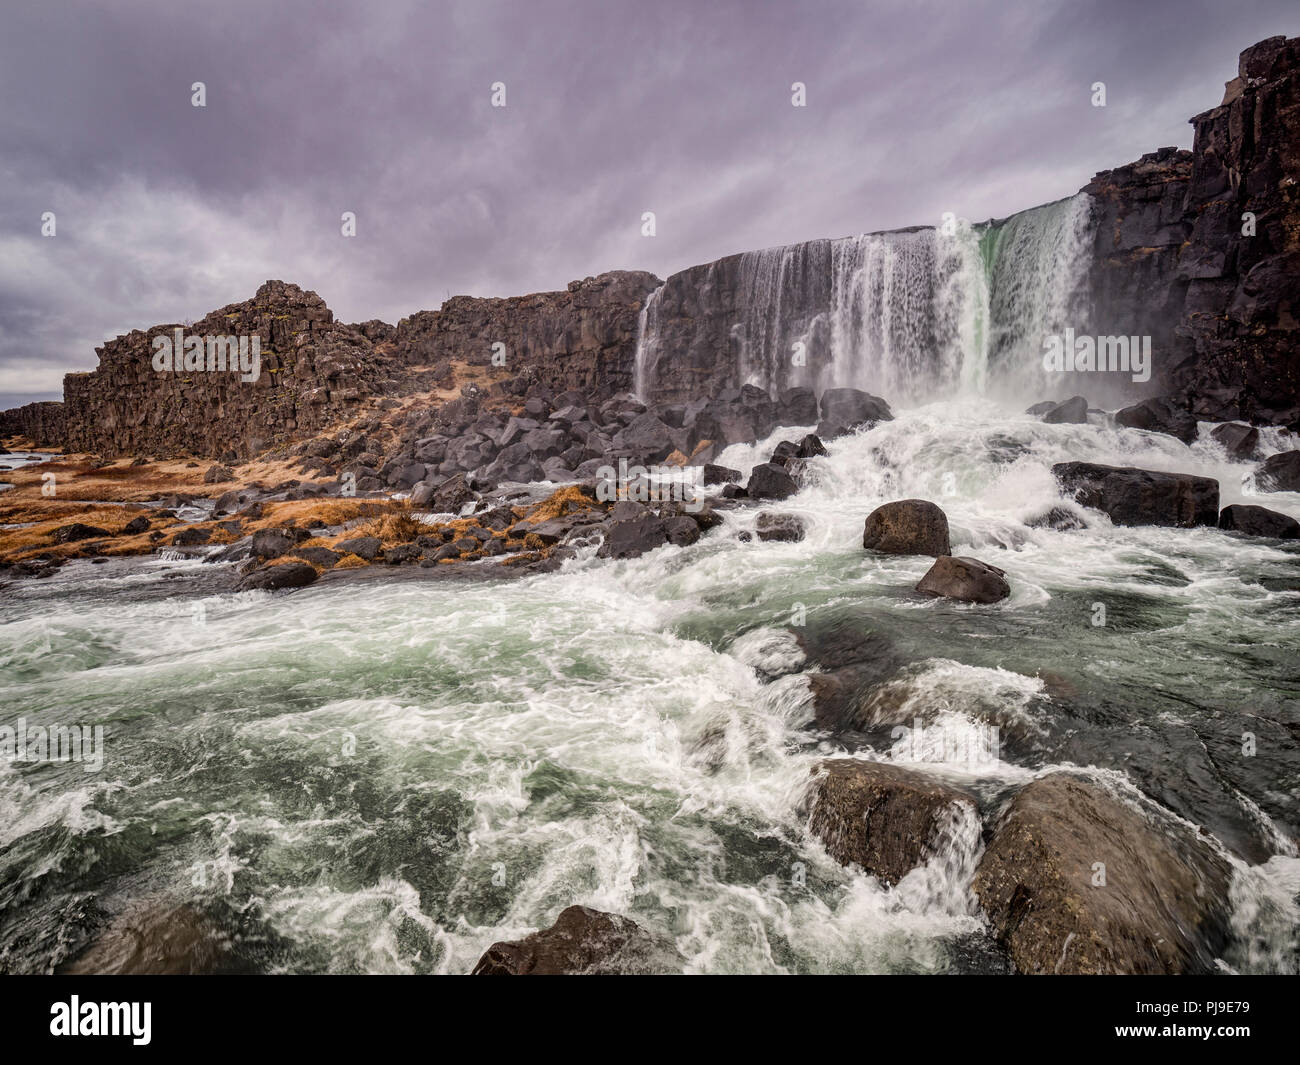 Oxararfoss Waterfall at Thingvellir, Iceland, one of the major attractions on the Golden Circle tourist route. - Stock Image